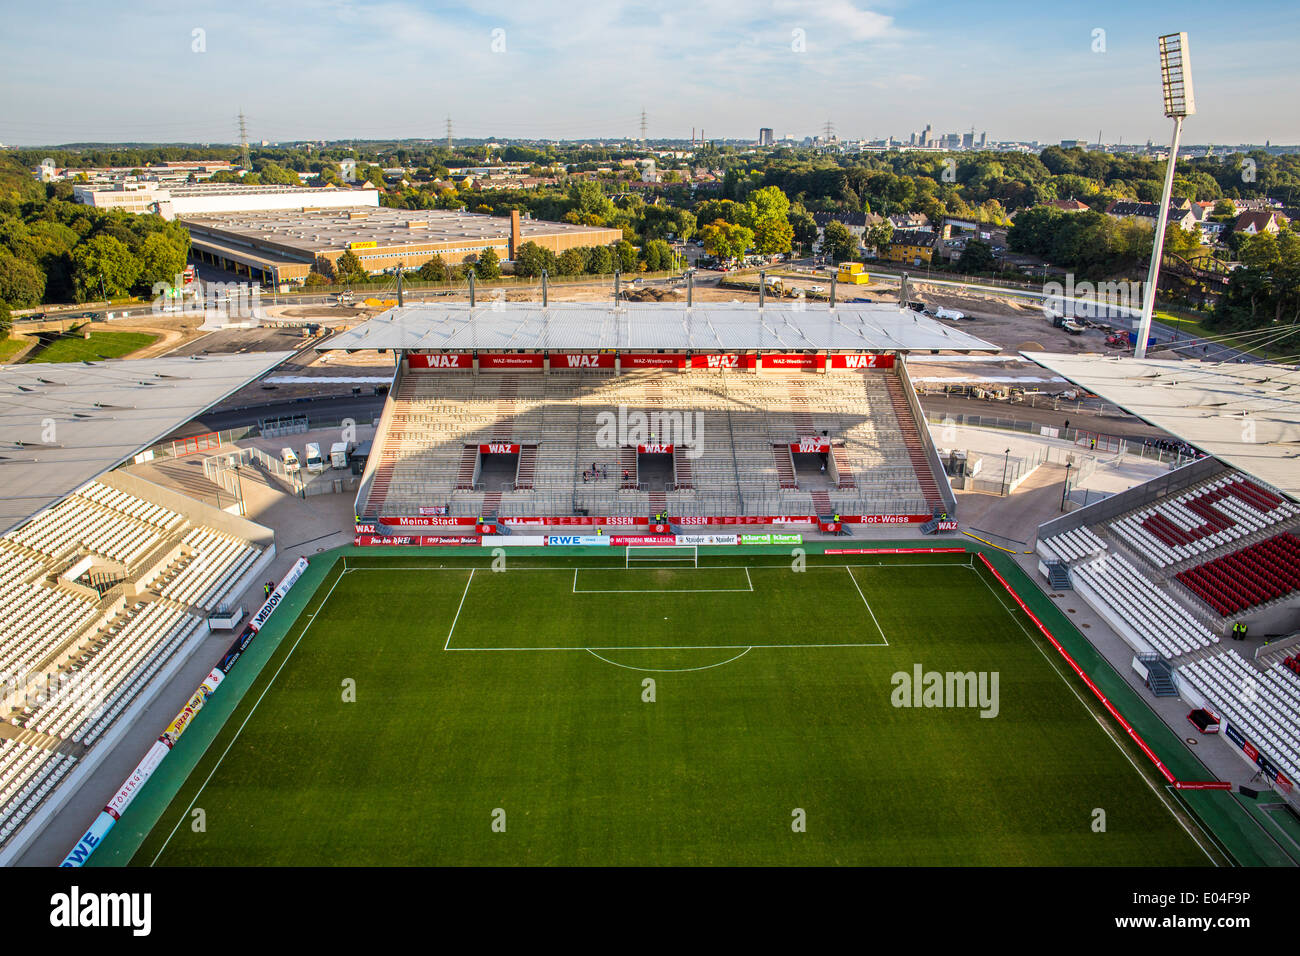 Football, soccer stadium of Germany Rot-Weiss-Essen soccer club. - Stock Image